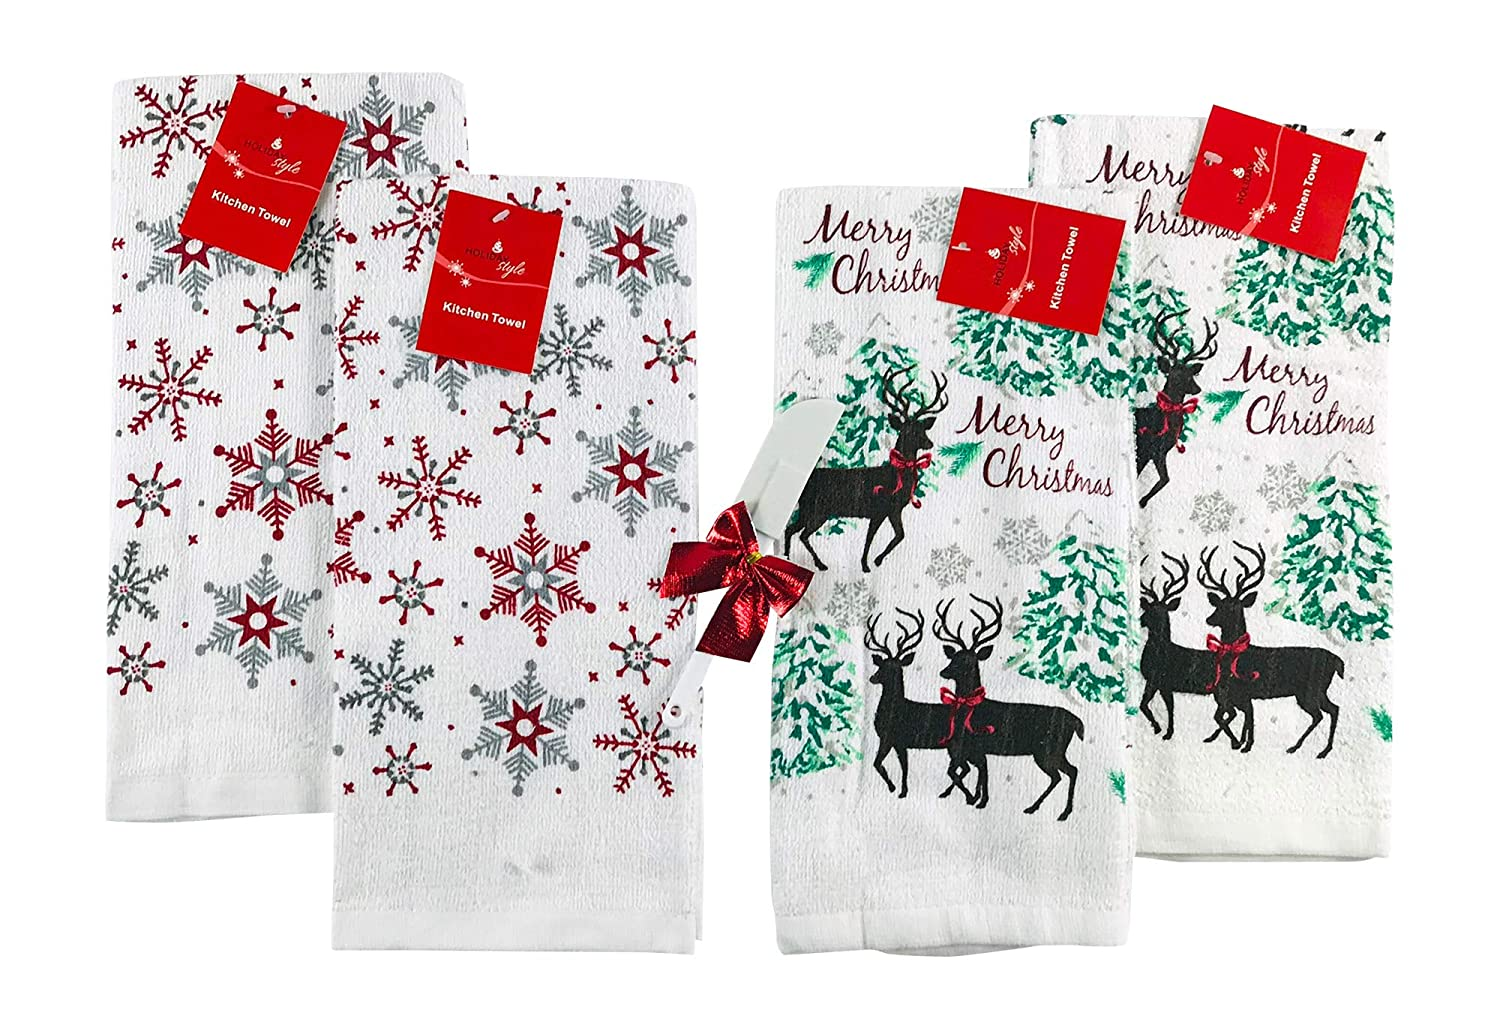 Two Sets of Snowman Friends 4 Pc Holiday Seasonal Kitchen Towels Snowman Party